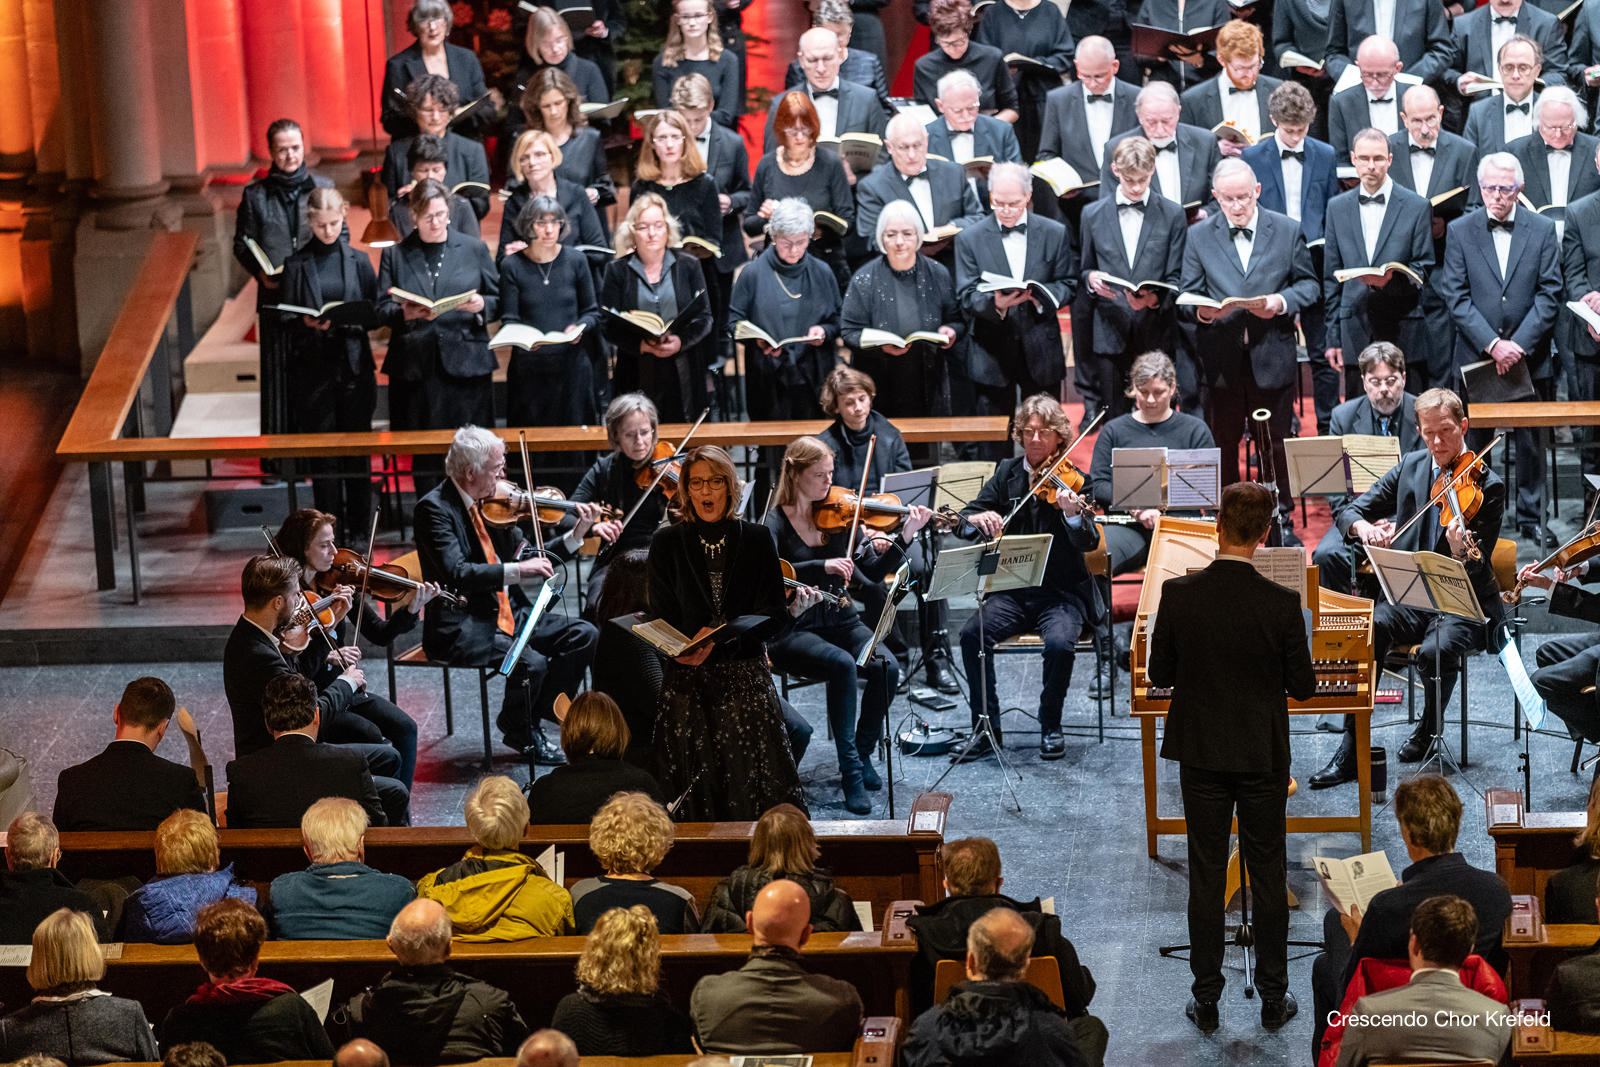 13_20191222_Crescendo_Chor_Krefeld_Messiah_023